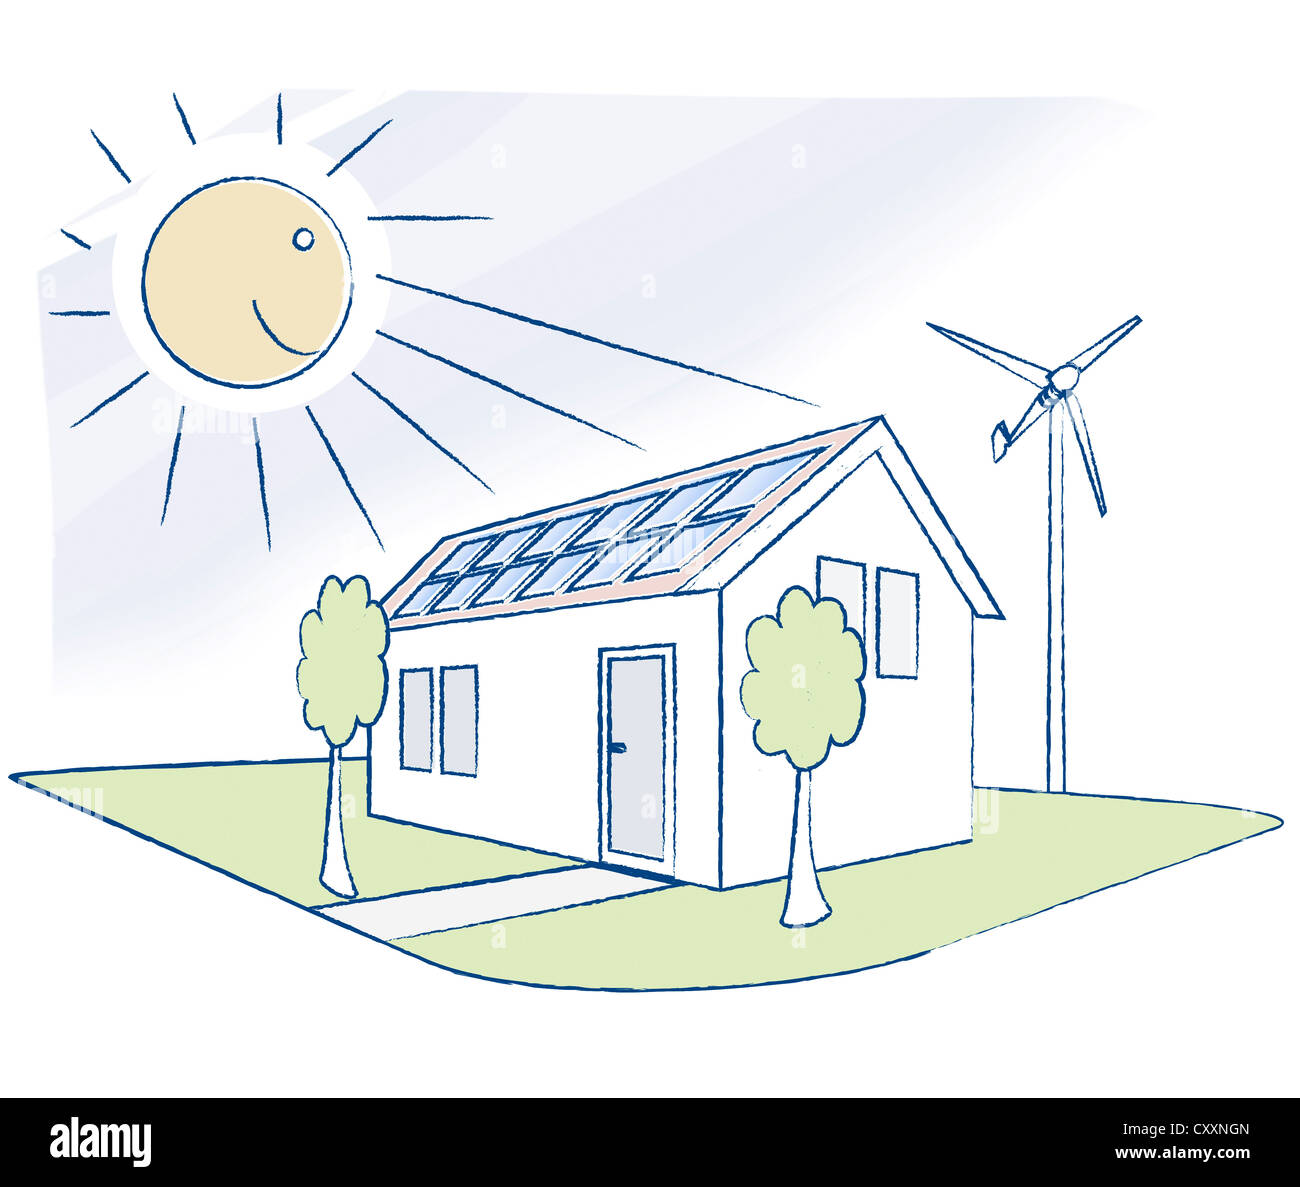 solar panels mobile homes html with Stock Photo House With Solar Panels And A Small Wind Turbine Illustration 50989477 on Install Metal Roof Mobile Home besides 2004 Ford F450 Lexington Motorhome 32974067 besides Oka 4x4 Off Road Travel Poptop likewise 7 Expensive Mobile Homes besides Stock Photo Timber Clad Zero Carbon Passive House With Triple Glazed Windows Roof 30958708.